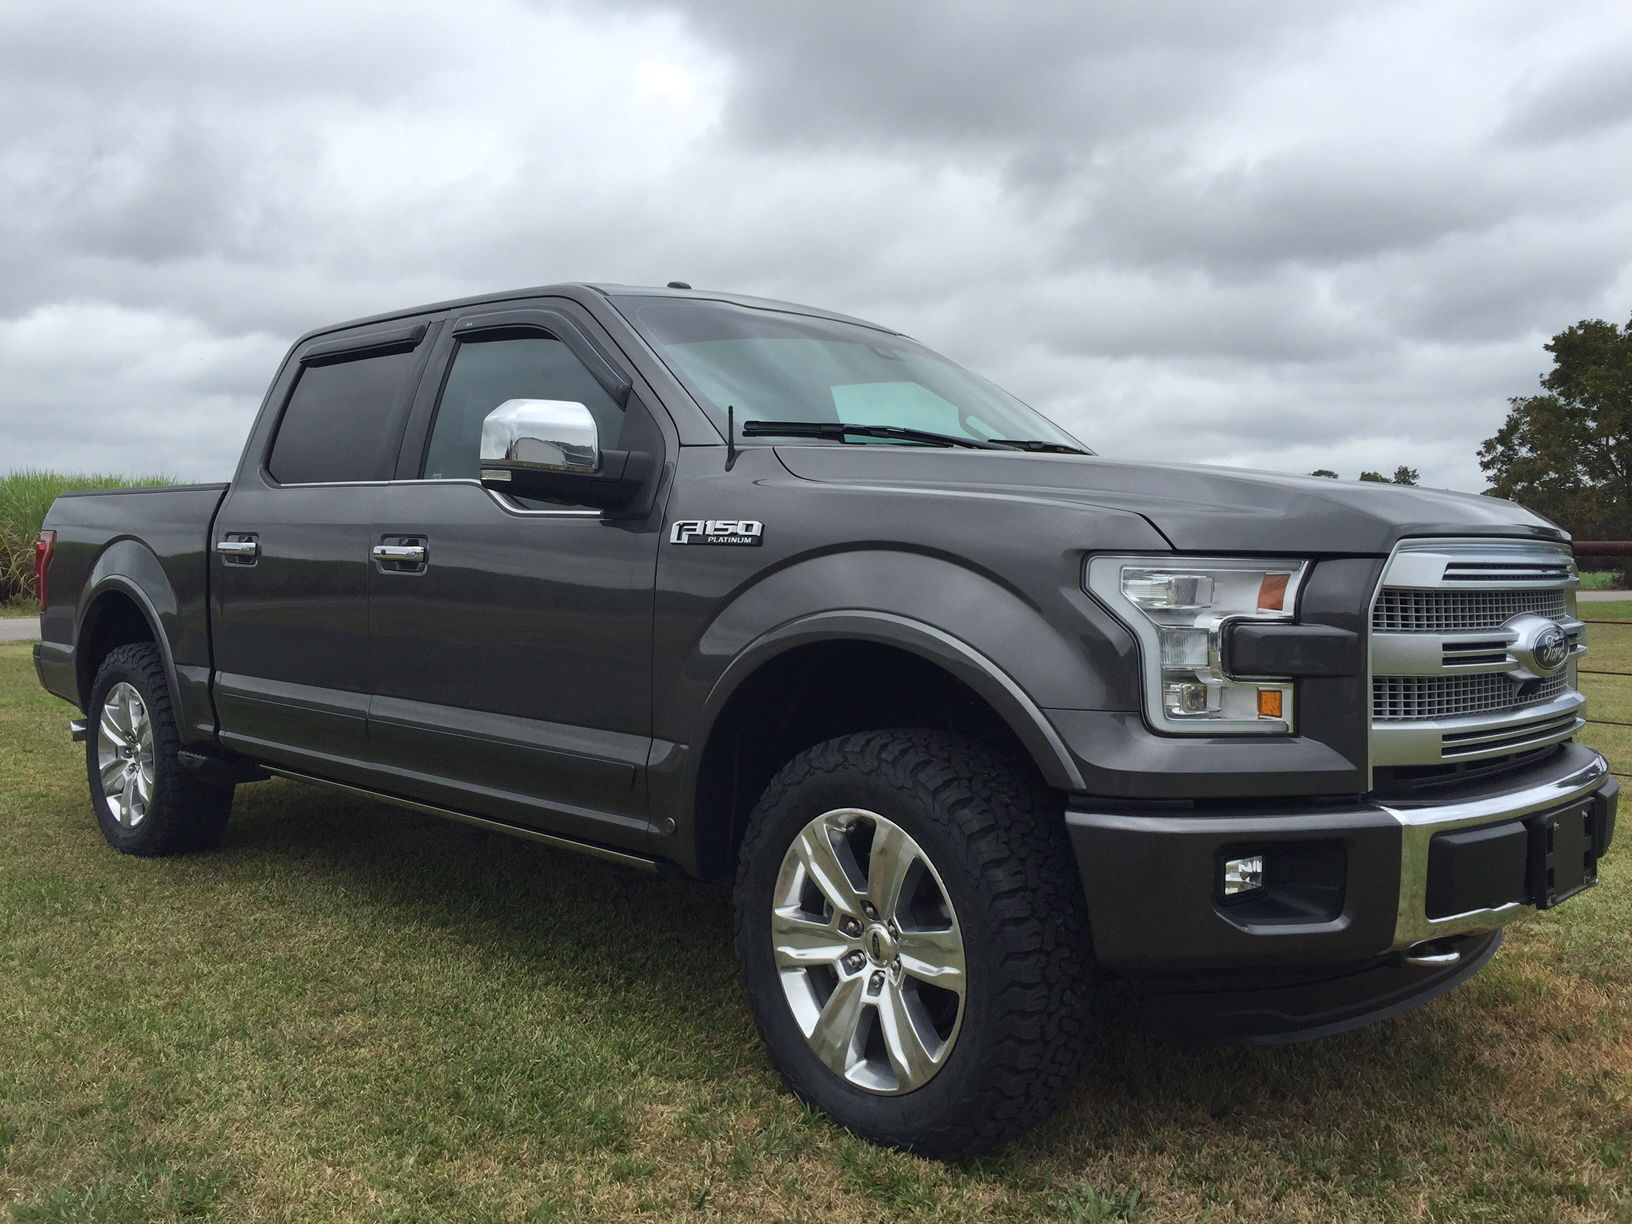 2017 F150 Leveling Kit >> Leveled out with 275/65 R20 KO2's - Ford F150 Forum - Community of Ford Truck Fans